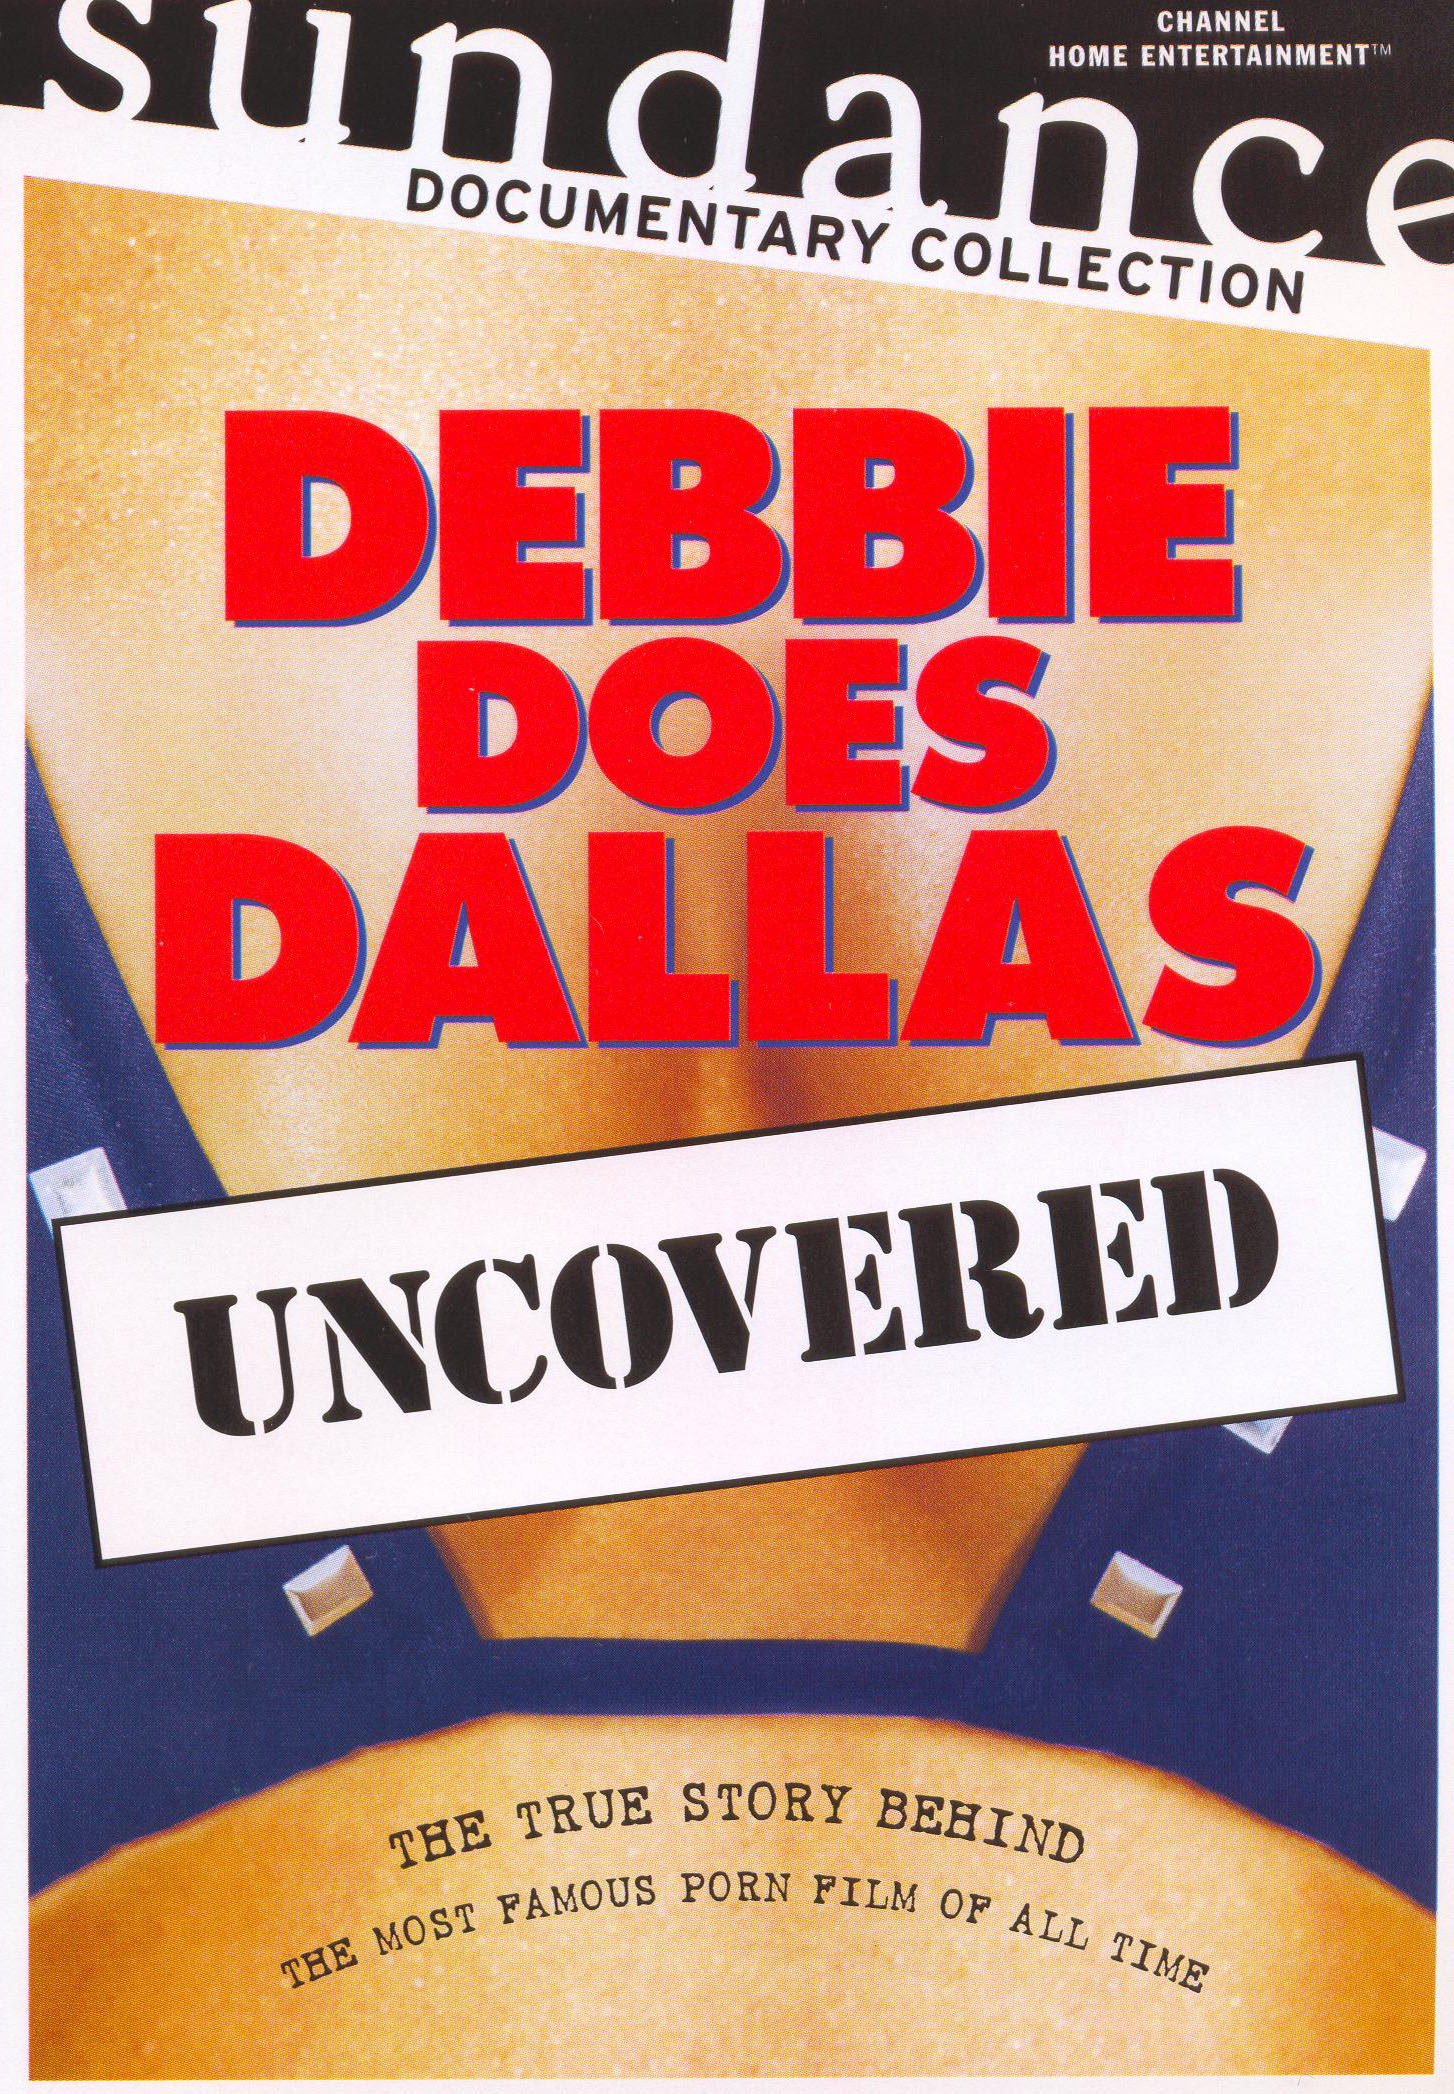 Debbie Does Dallas Uncovered